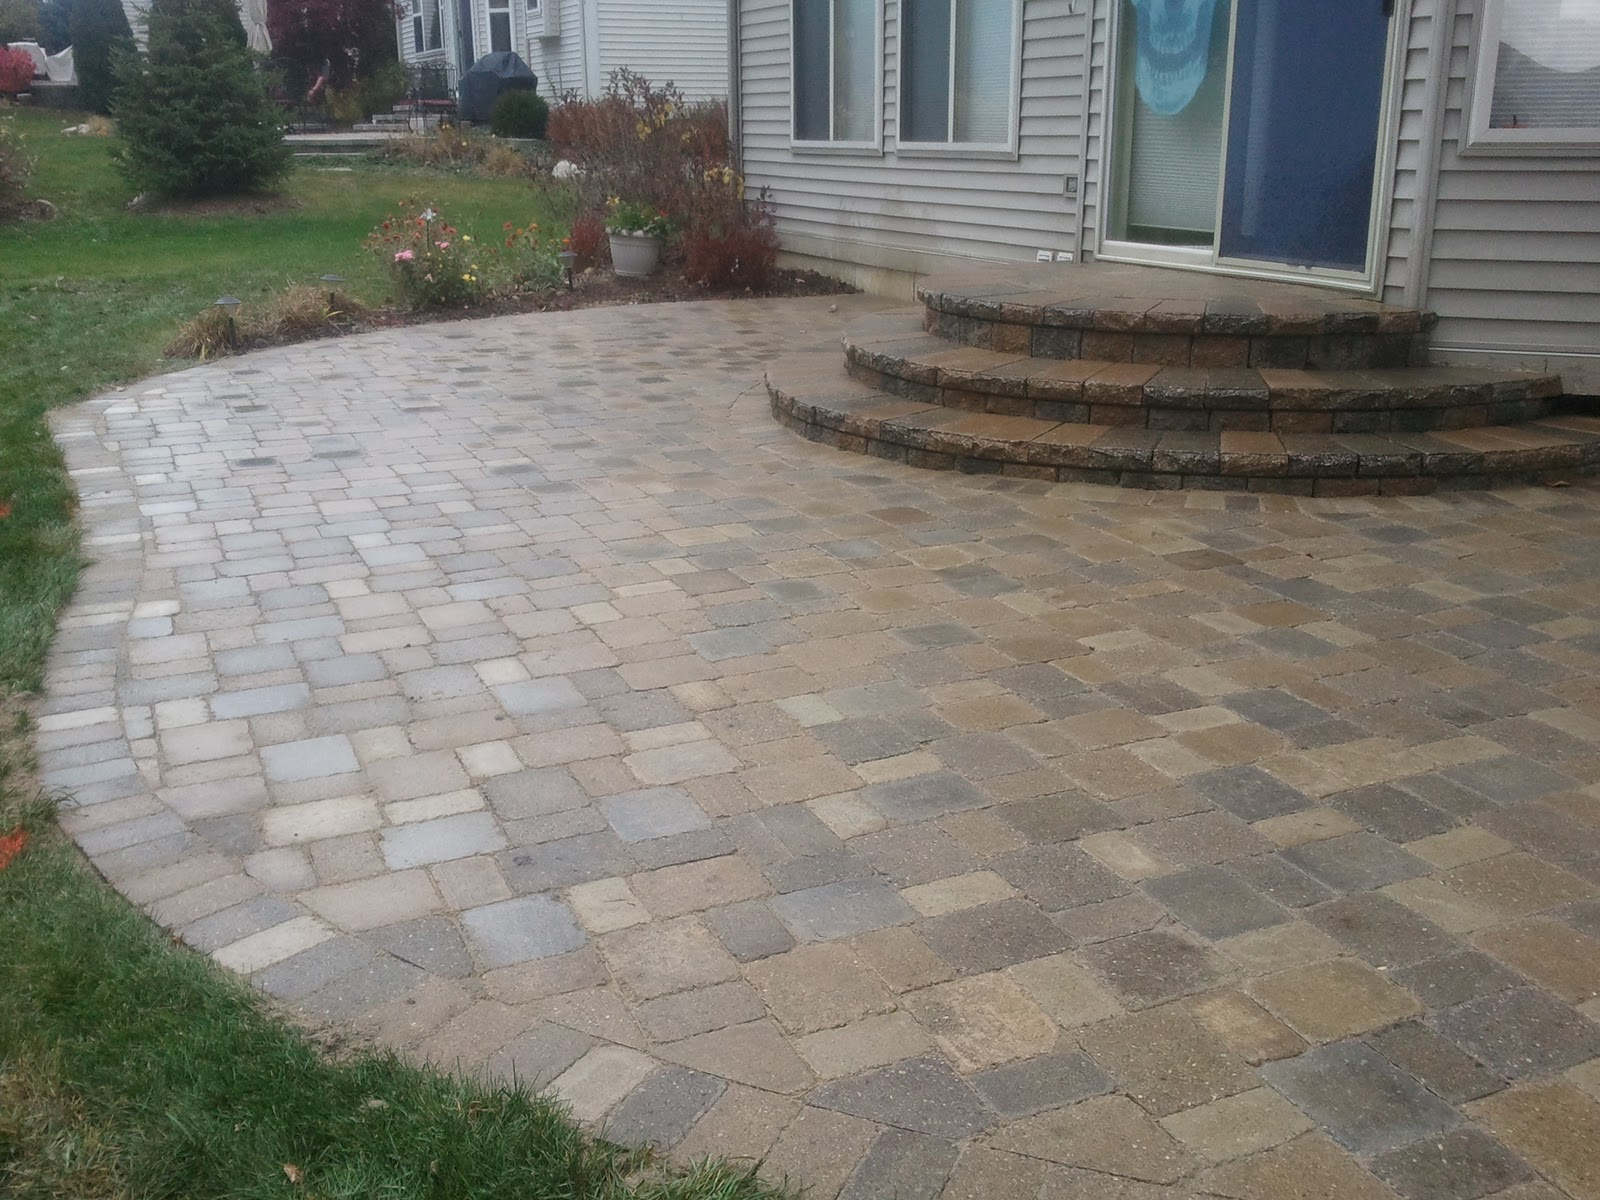 Patio stone pavers patio design ideas for Paving stone garden designs